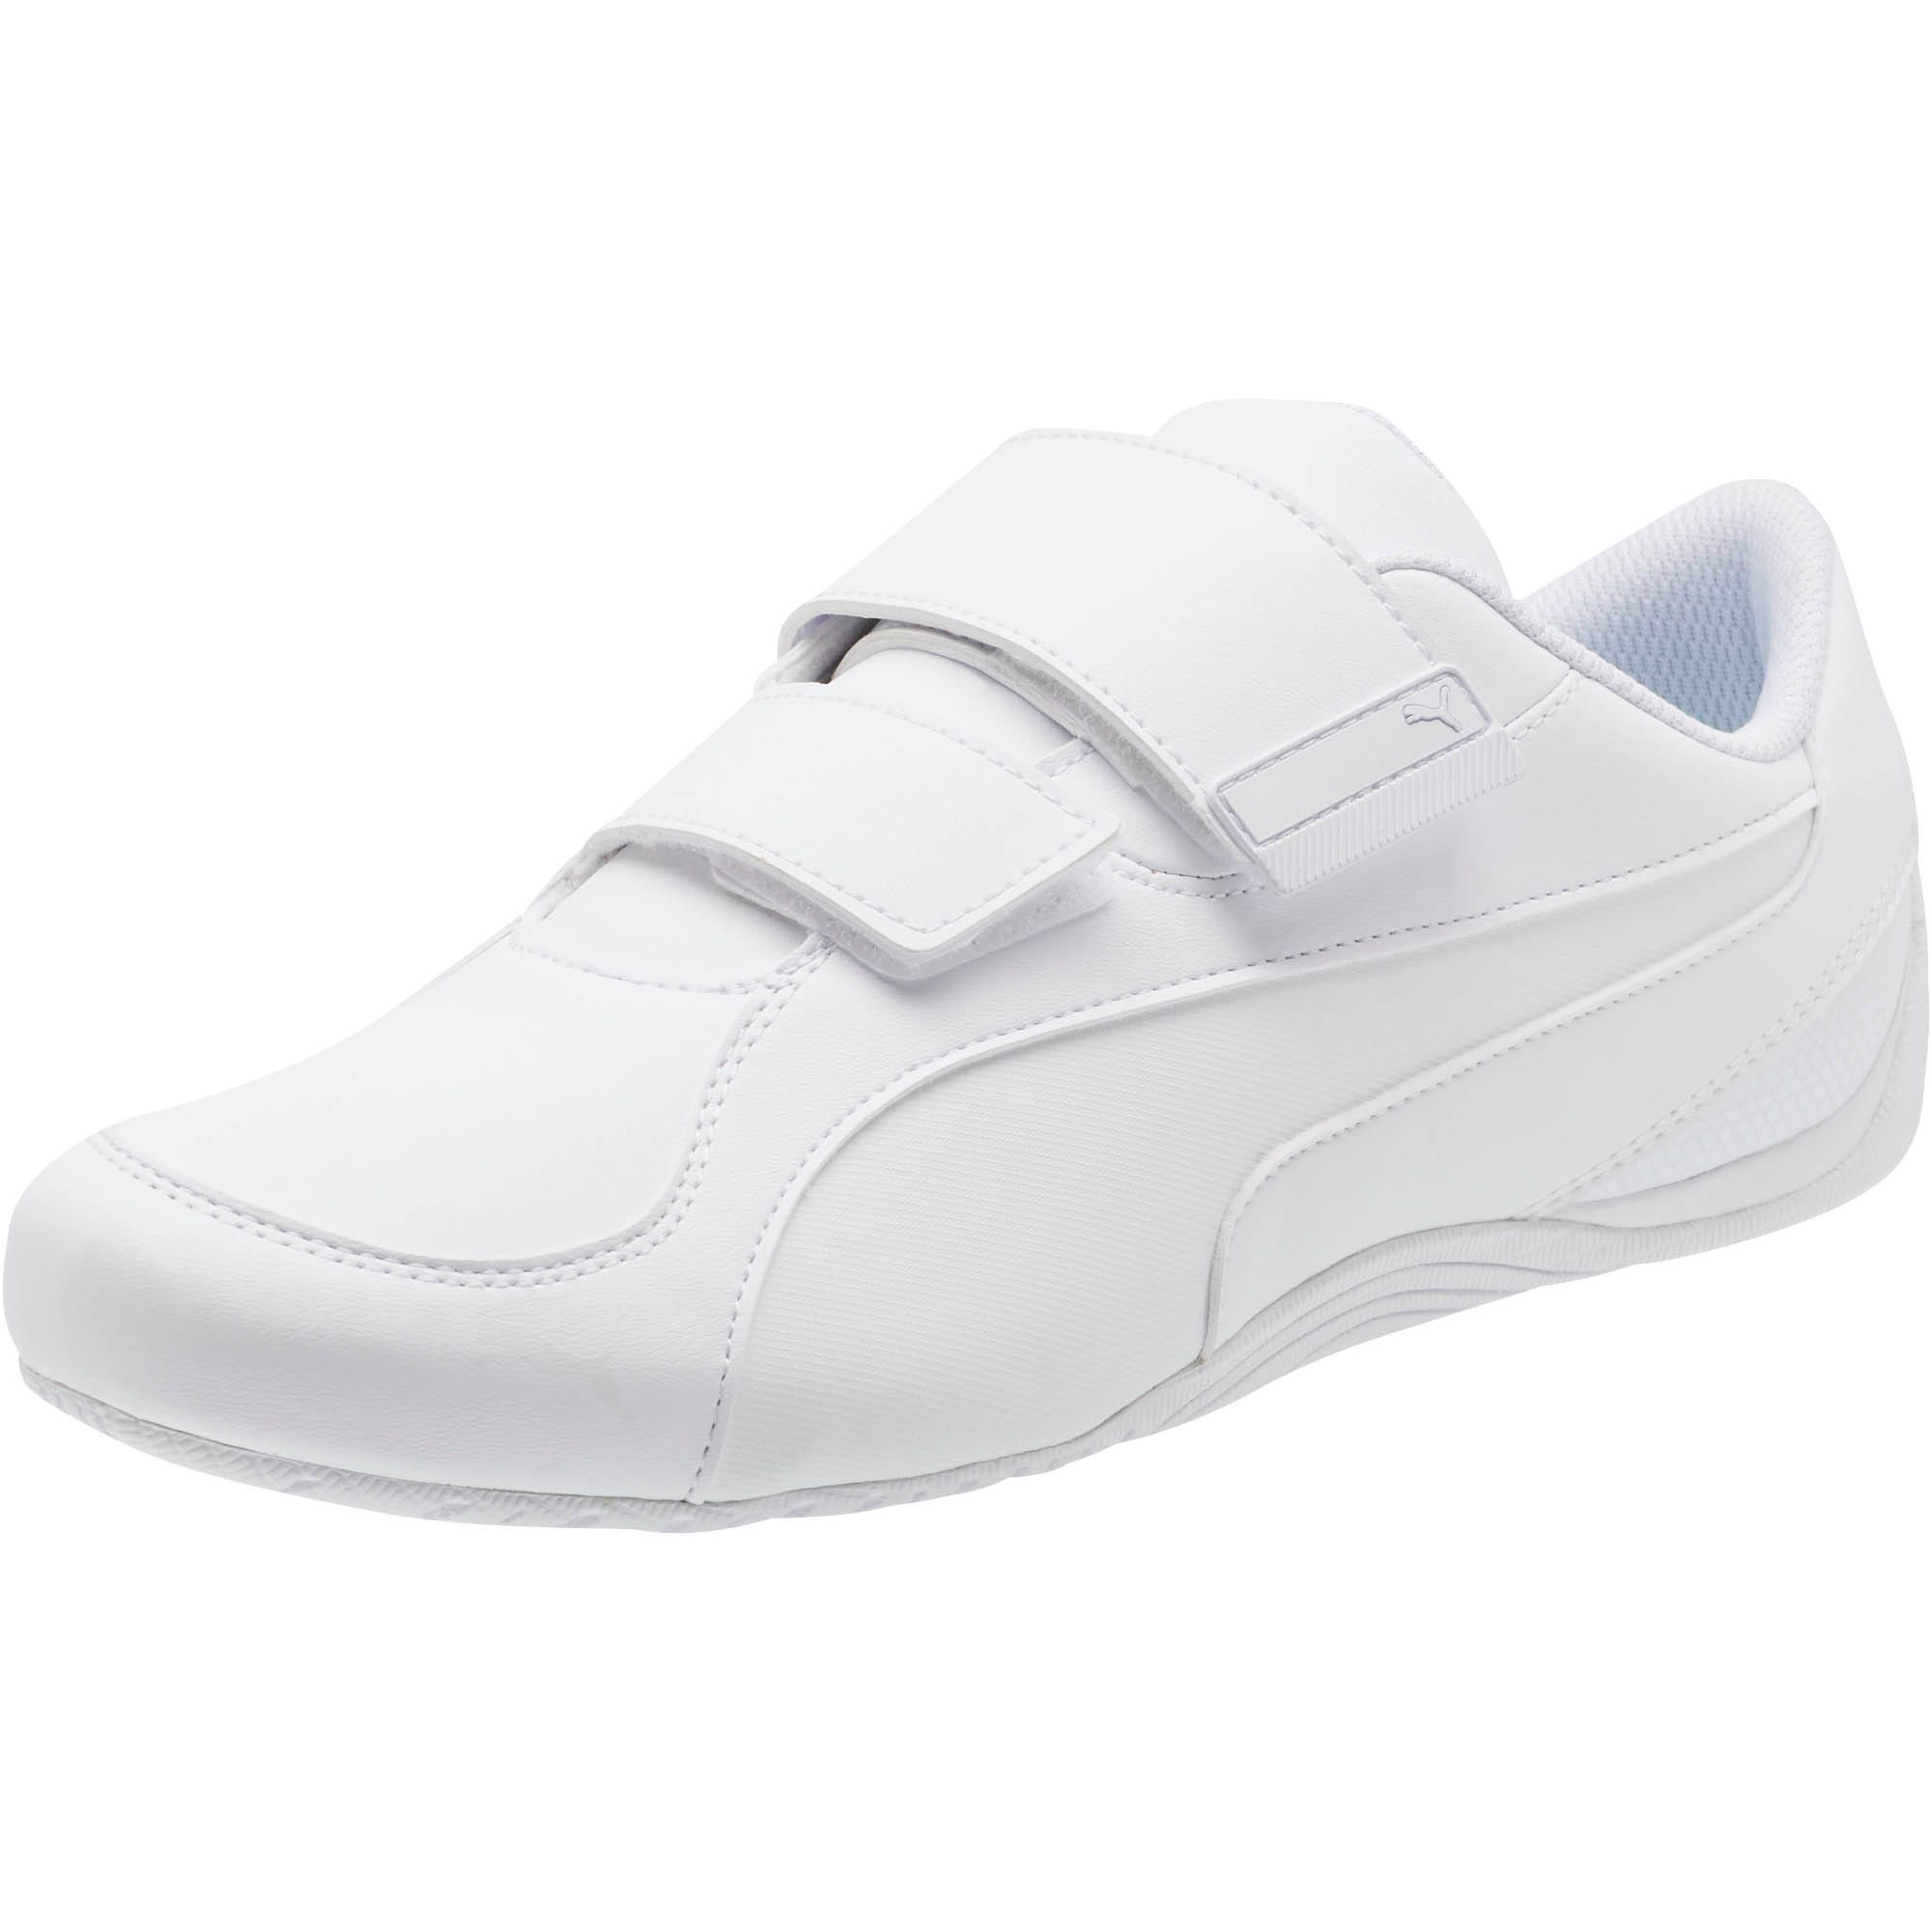 Thumbnail 1 of Drift Cat 5 AC Shoes, Puma White-Puma White, medium